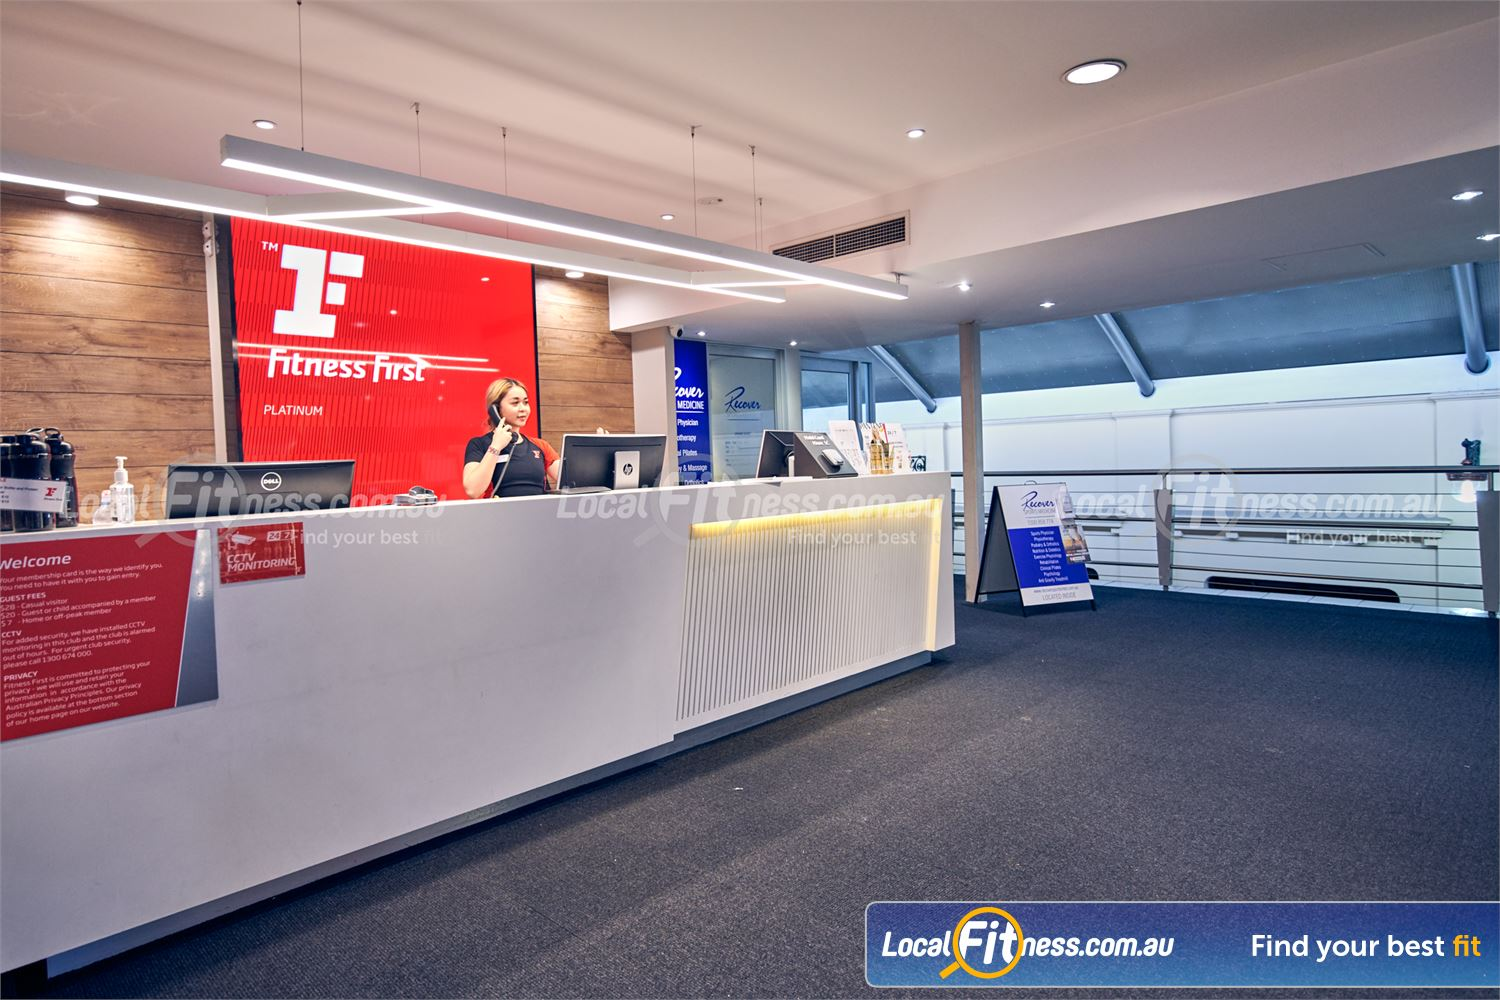 Fitness First Platinum Near South Yarra Our team is ready to help you find your fit.